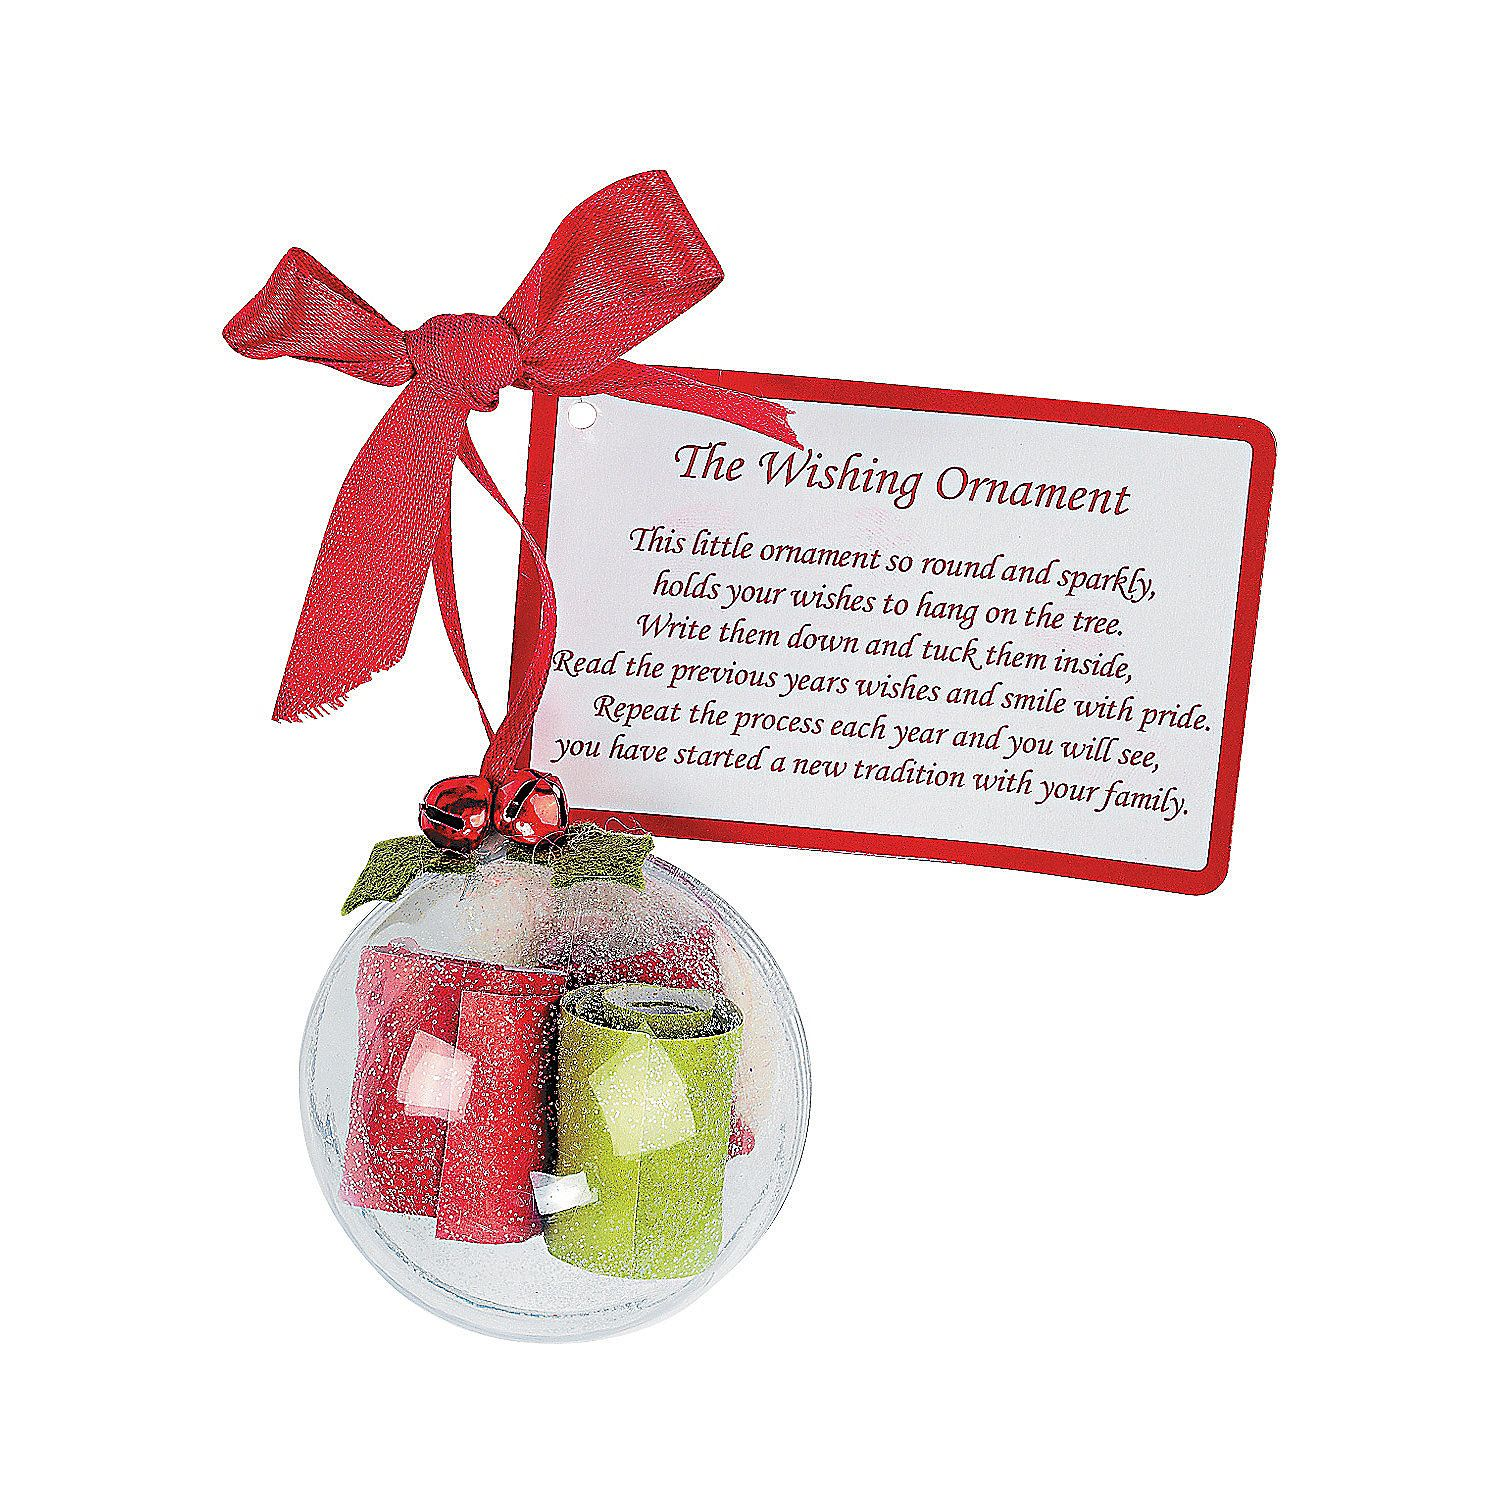 Legend Of The Christmas Tree Poem: Wishing Ornament Christmas Craft Kit. Makes 6 Ornaments